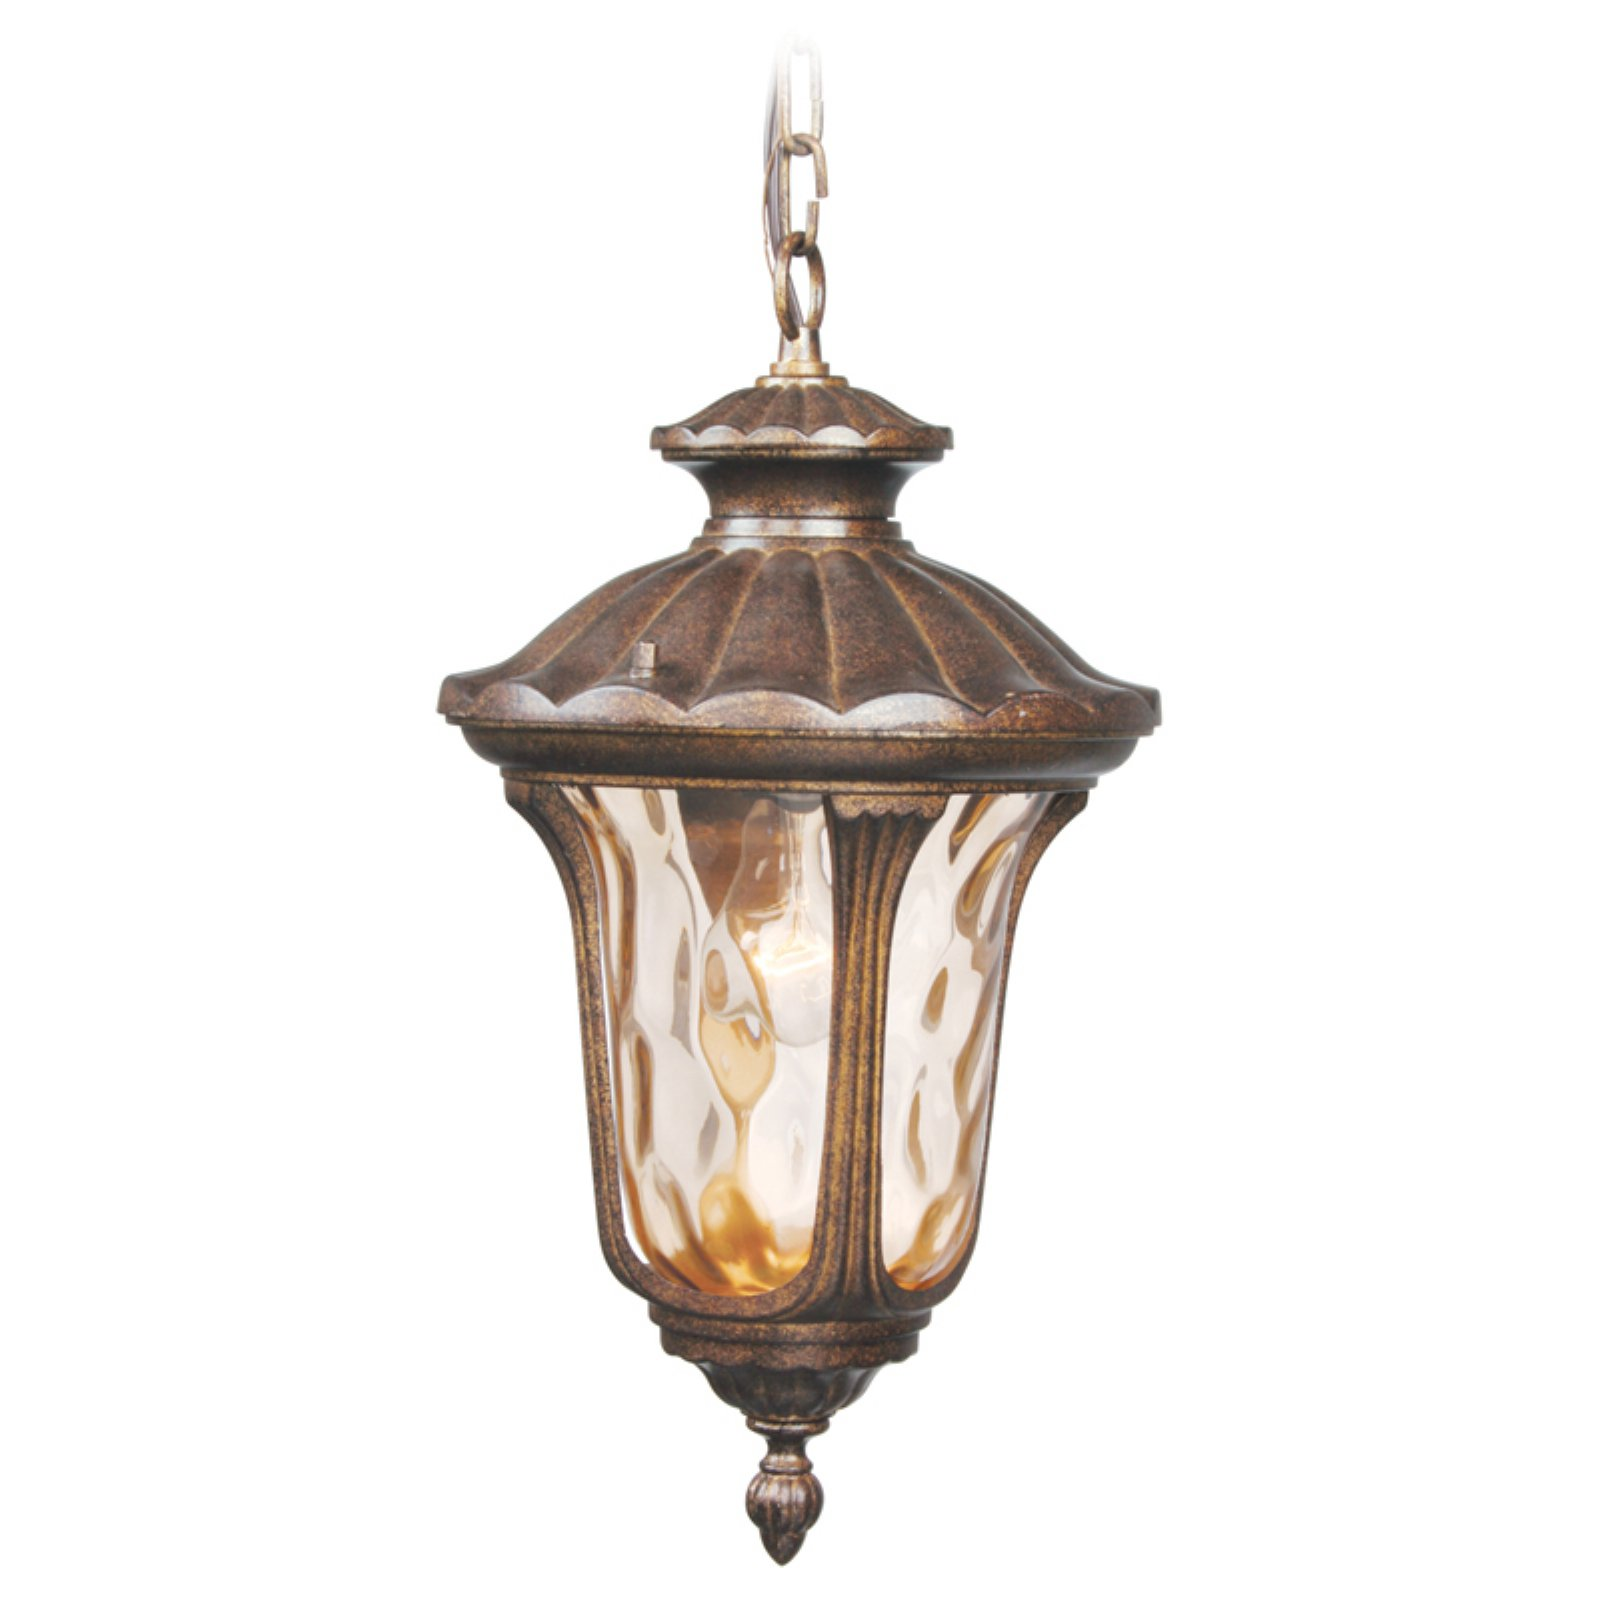 Livex Oxford 7654-50 Outdoor Hanging Lantern - 9.5Dia x 17.5H in. Moroccan Gold